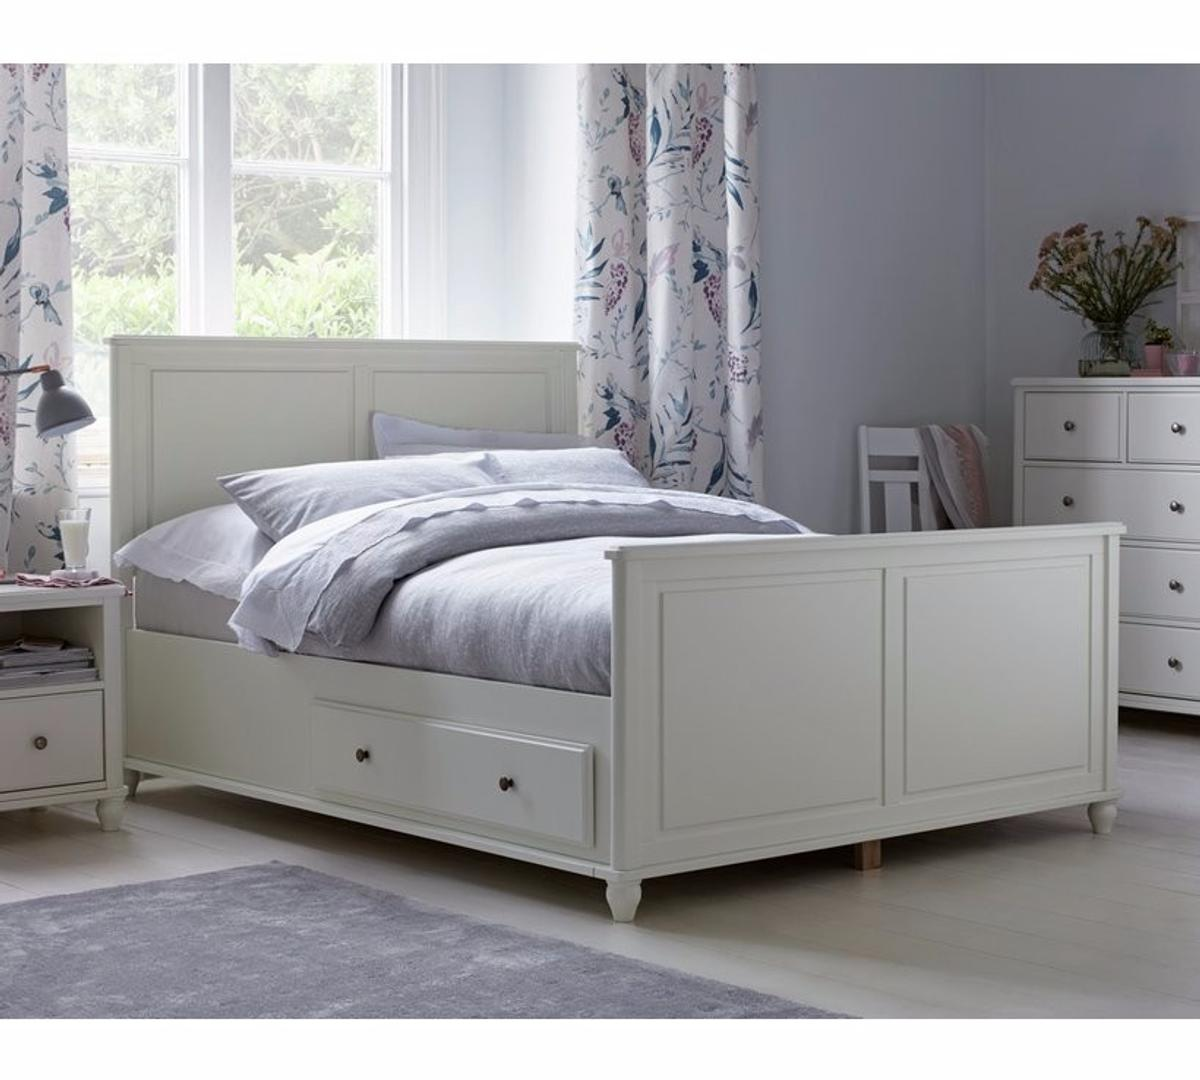 New Argos 7 drawer kingsize bed frame in WA7 Widnes for £7.7